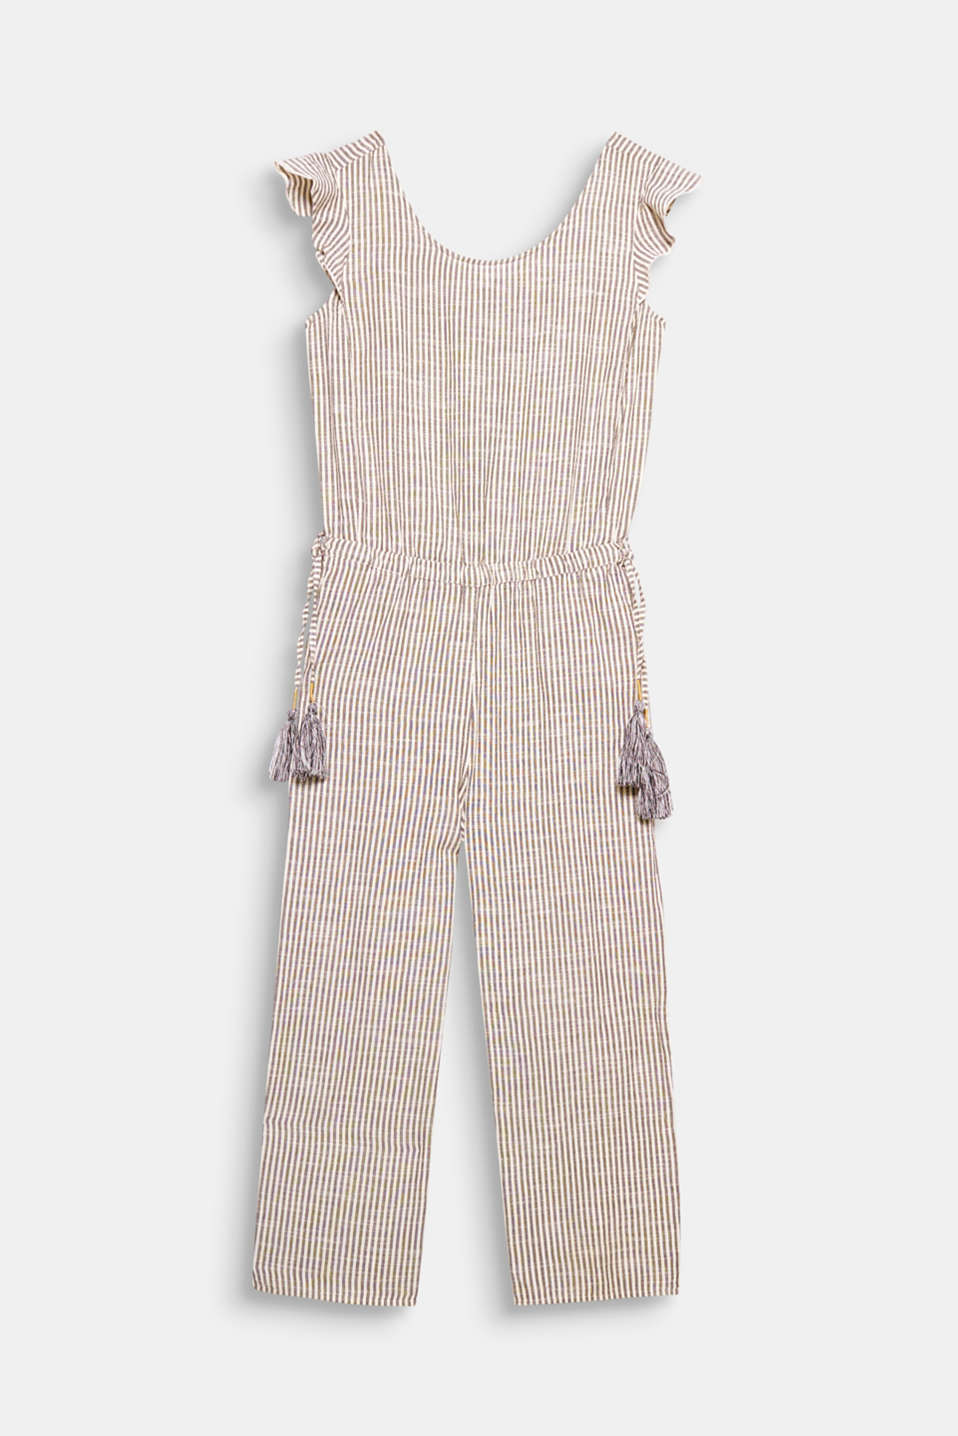 This light and airy jumpsuit will put you in a summery mood with its fashionable stripes, frill-trimmed arm openings and decorative tassels!